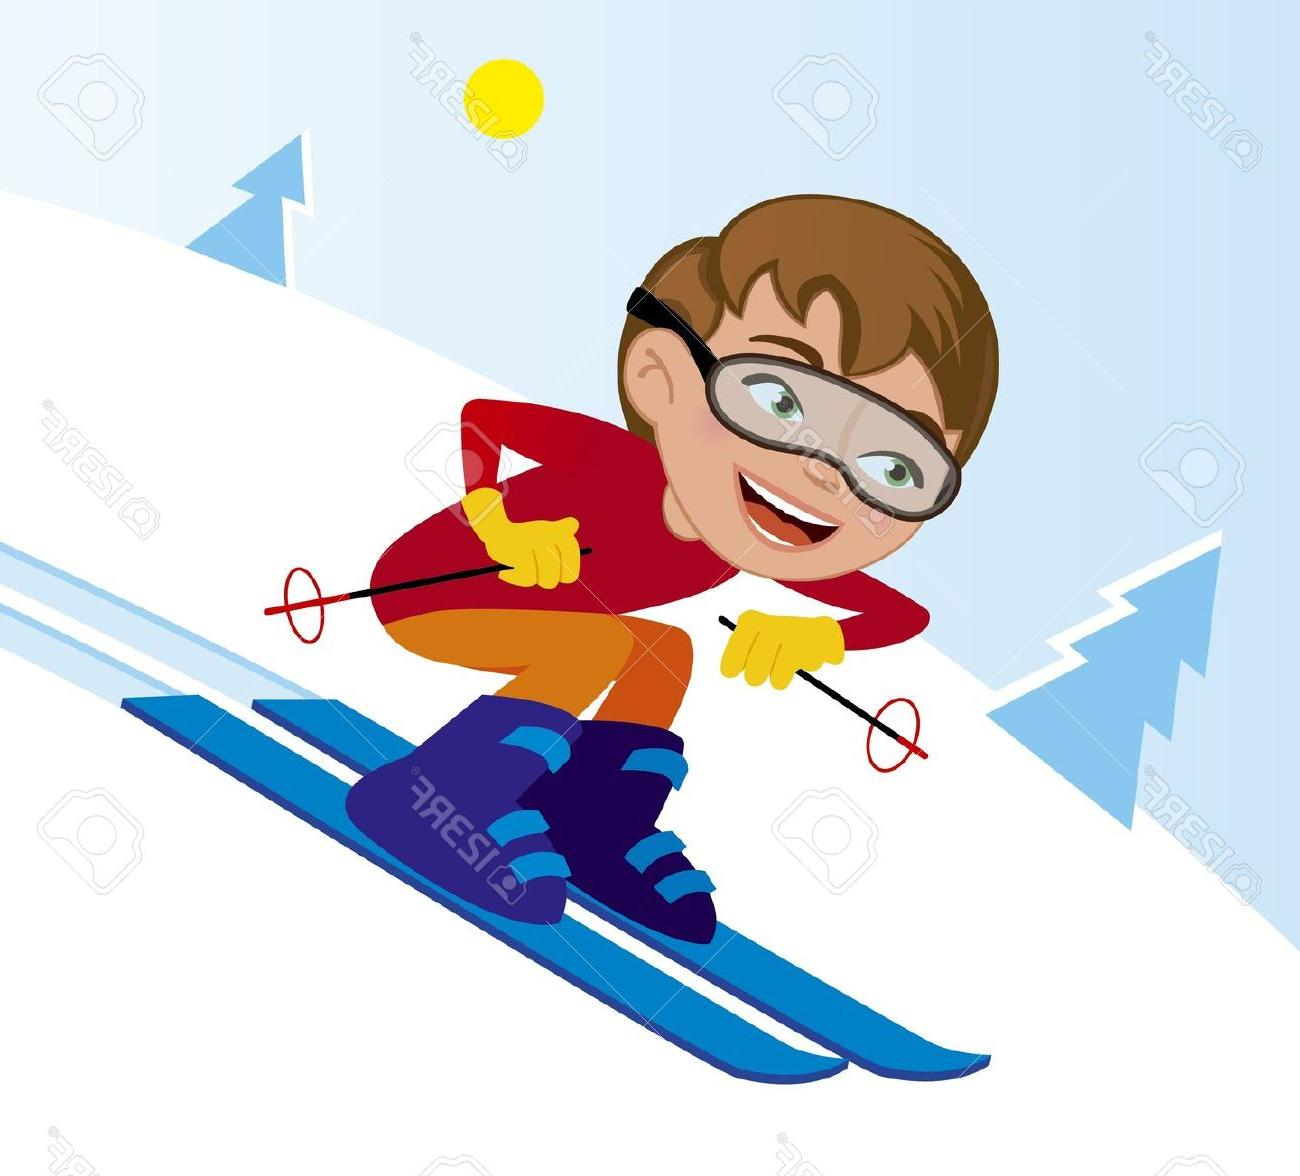 Unique skiing cartoon vector. Snowboarding clipart